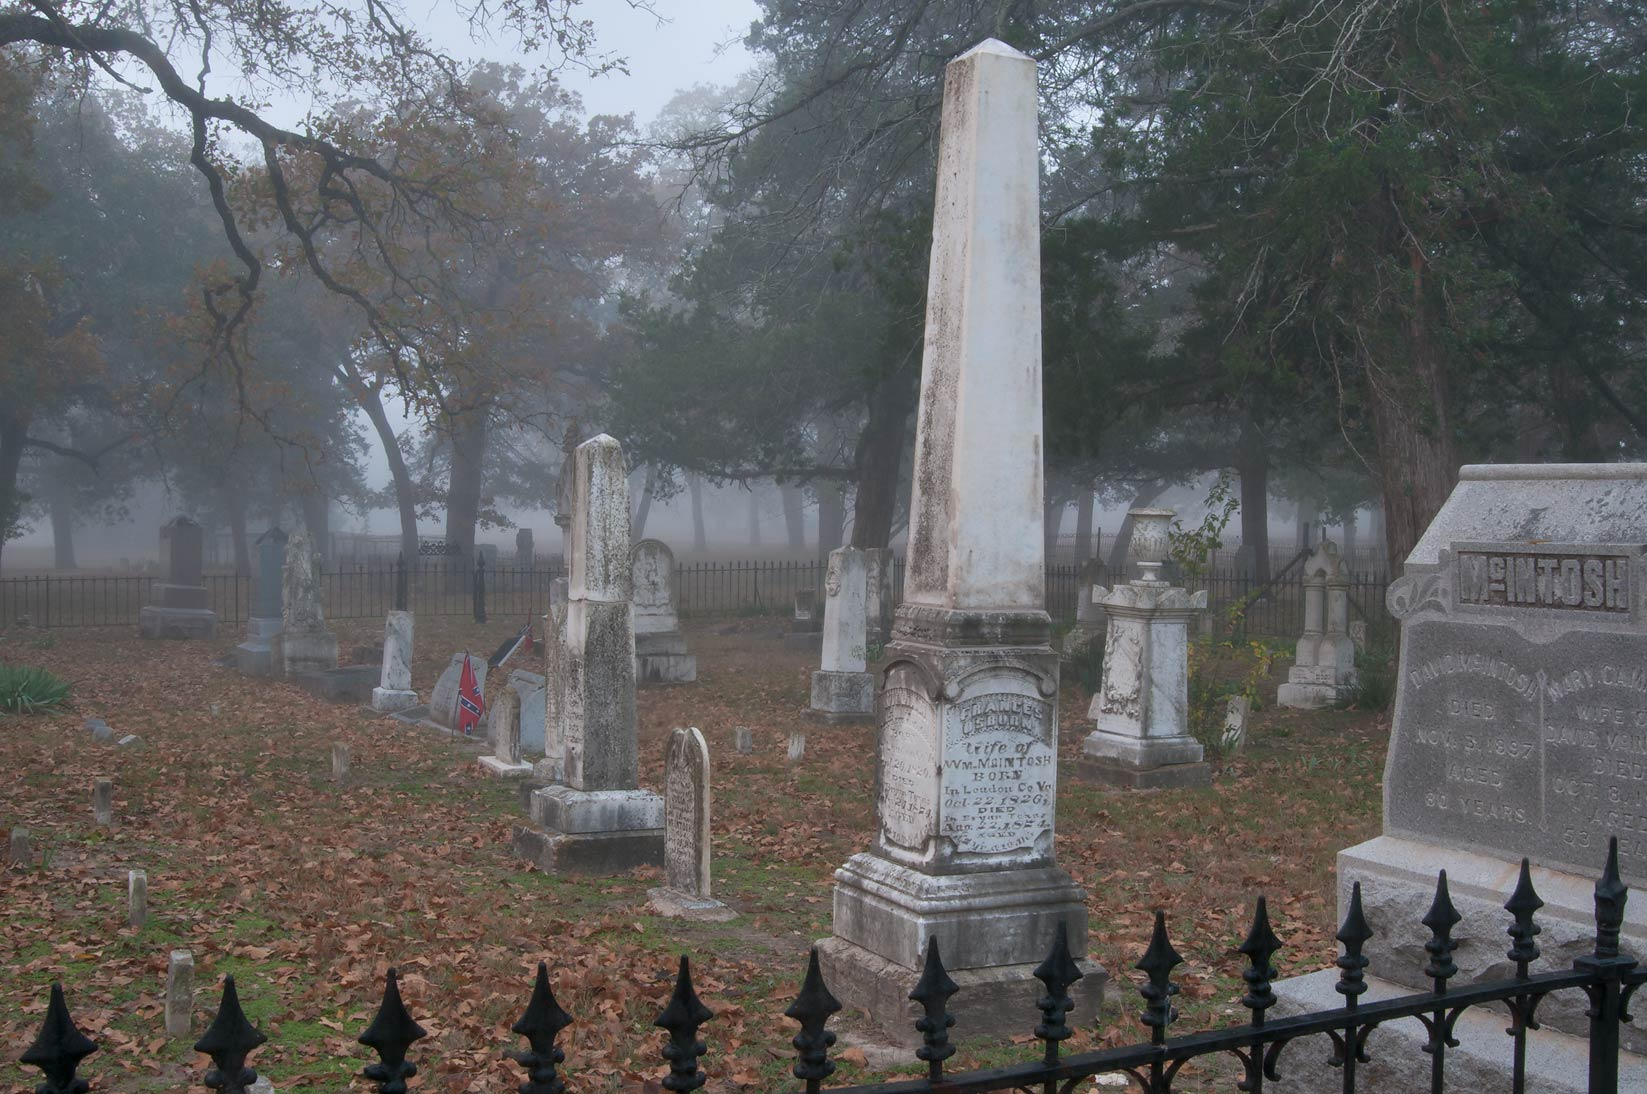 Tombs of Boonville Cemetery in fog. Bryan, Texas